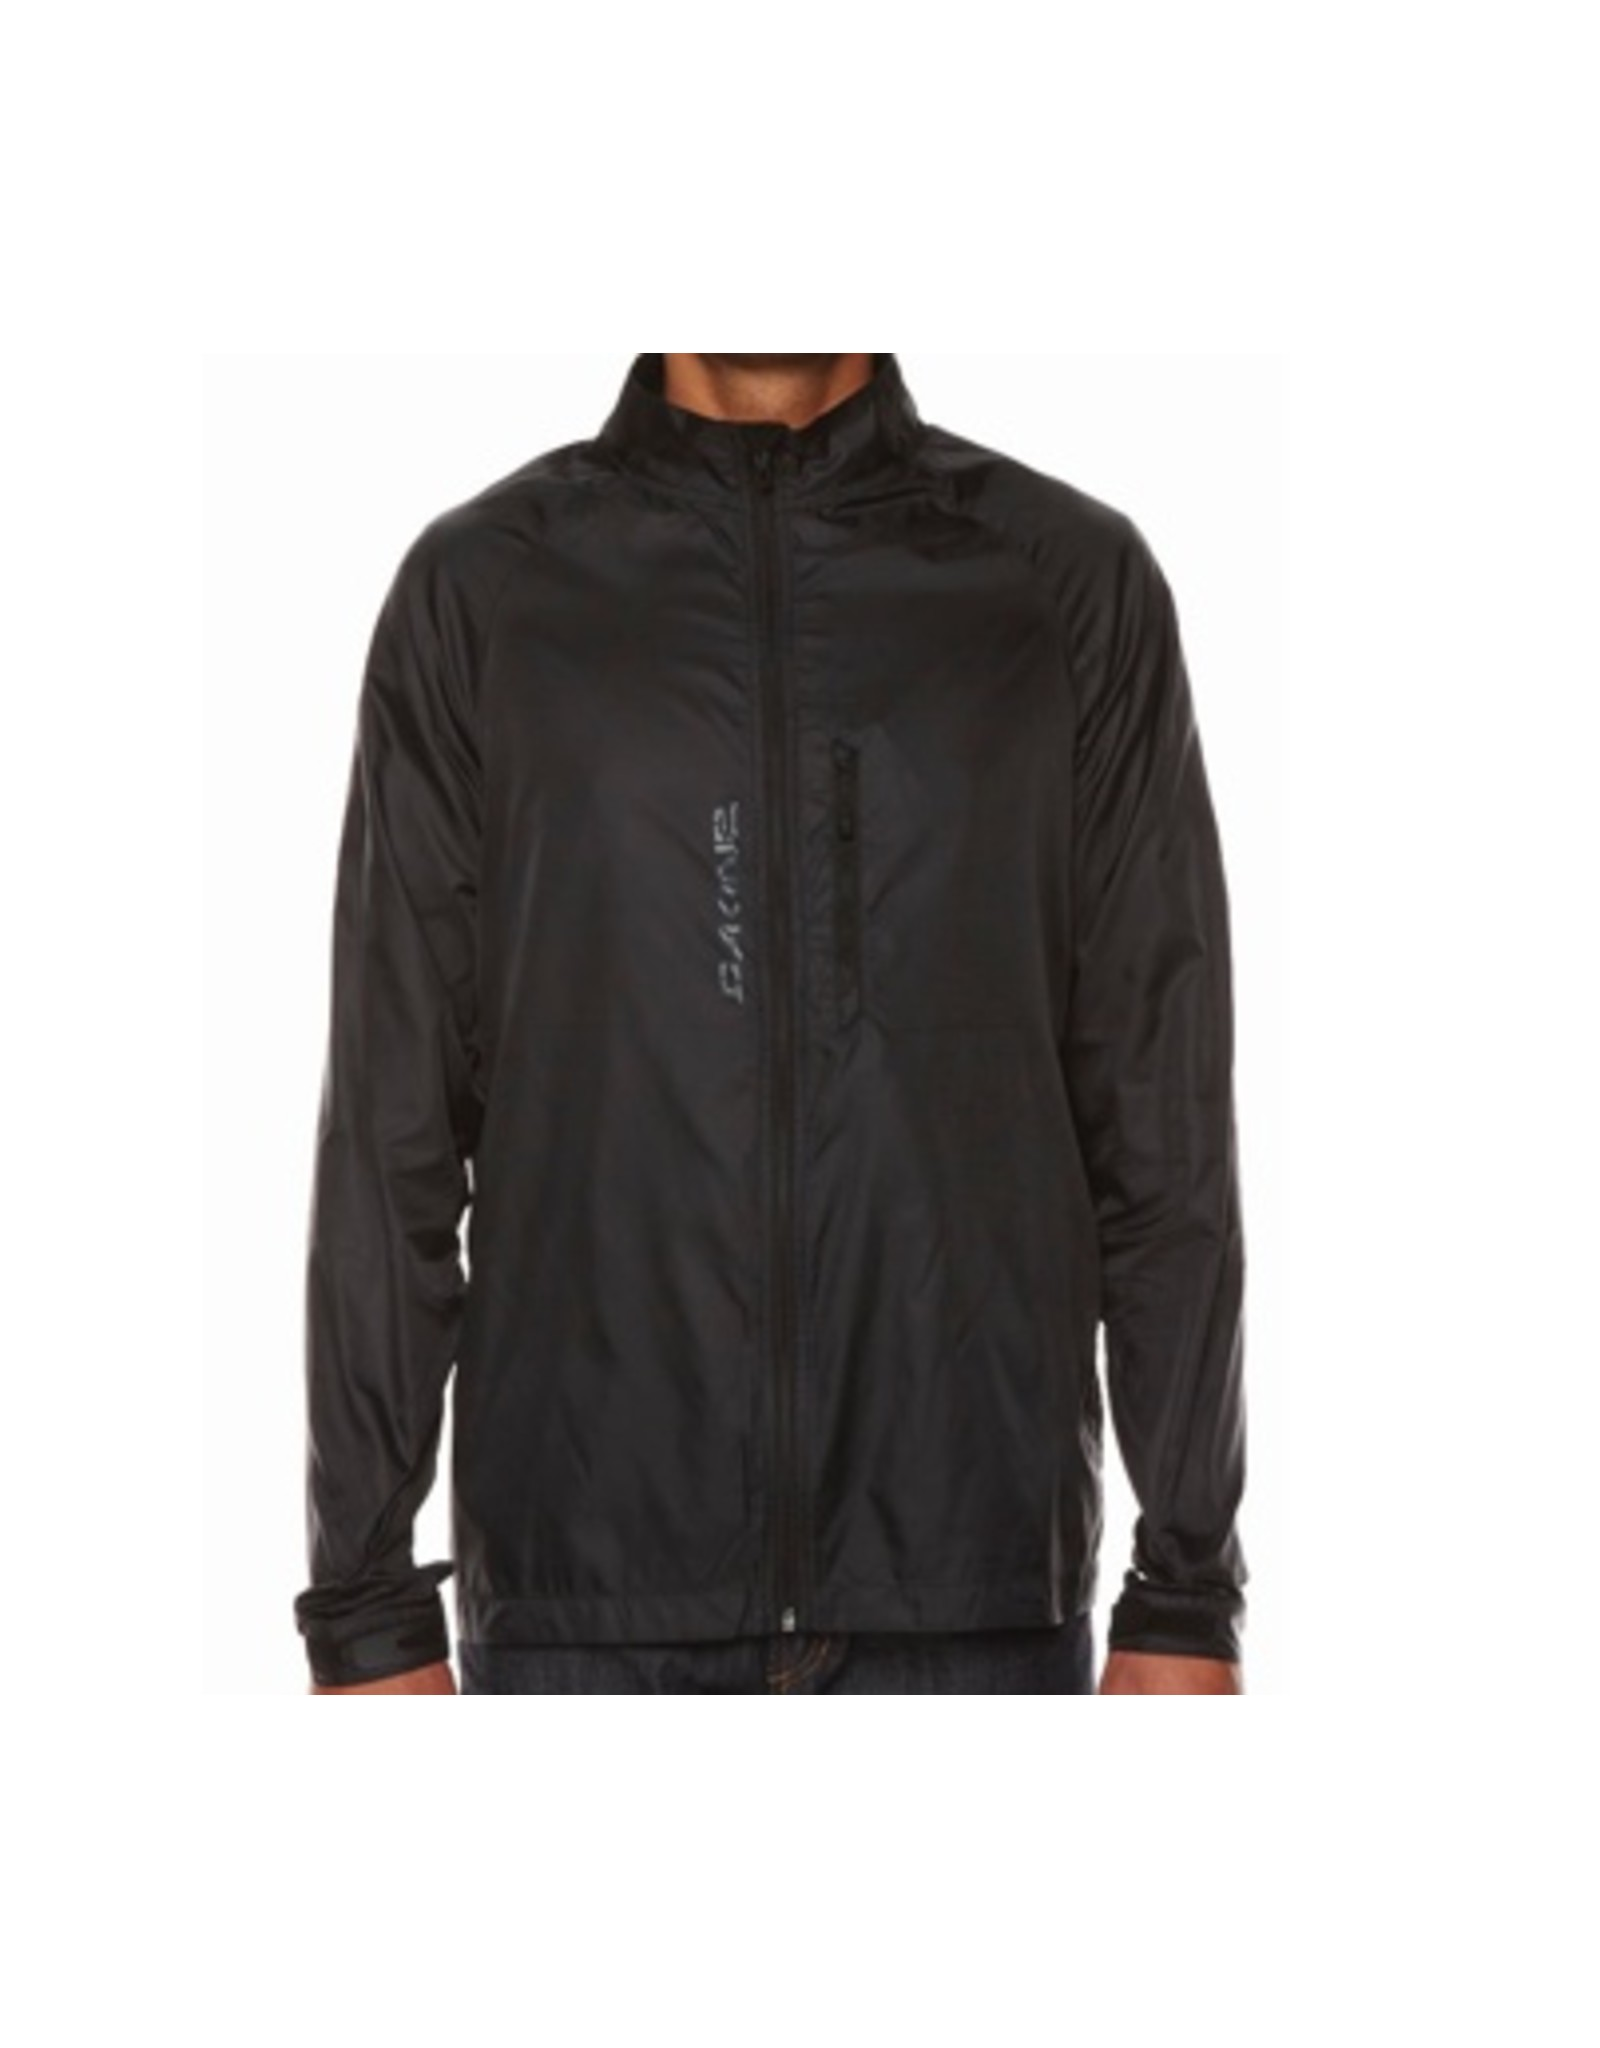 BREAKER JACKET BLACK M